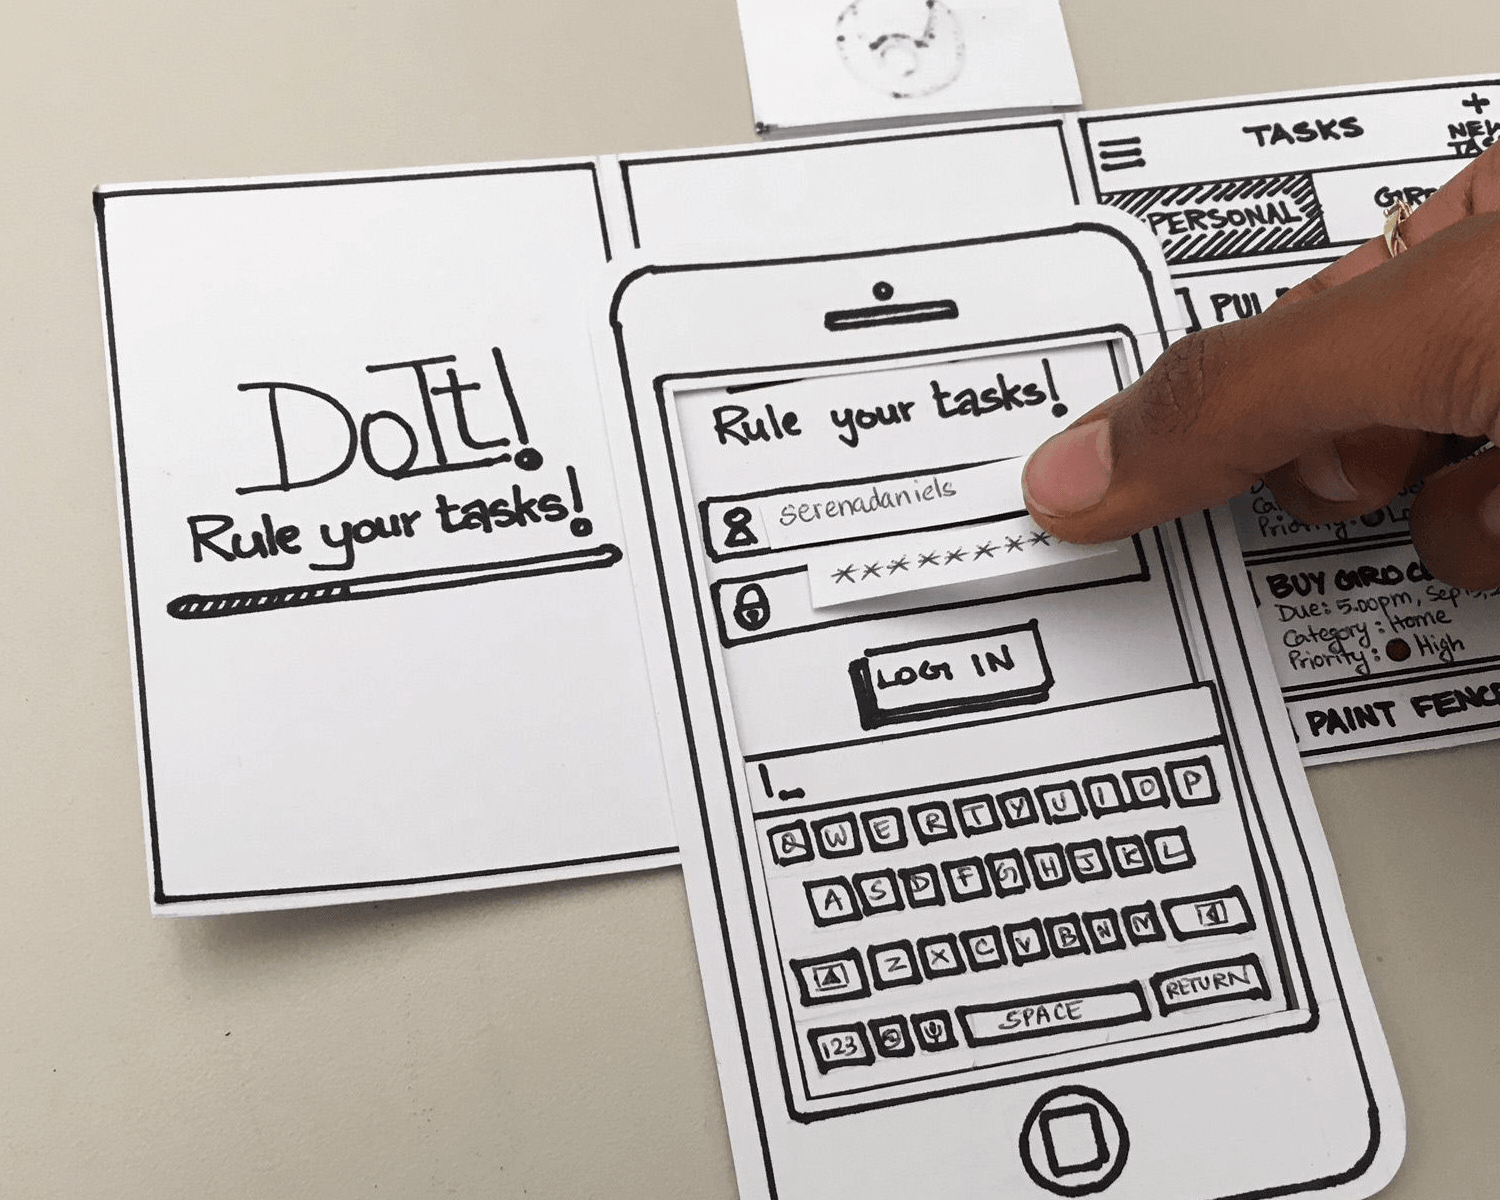 Paper prototyping with cutouts